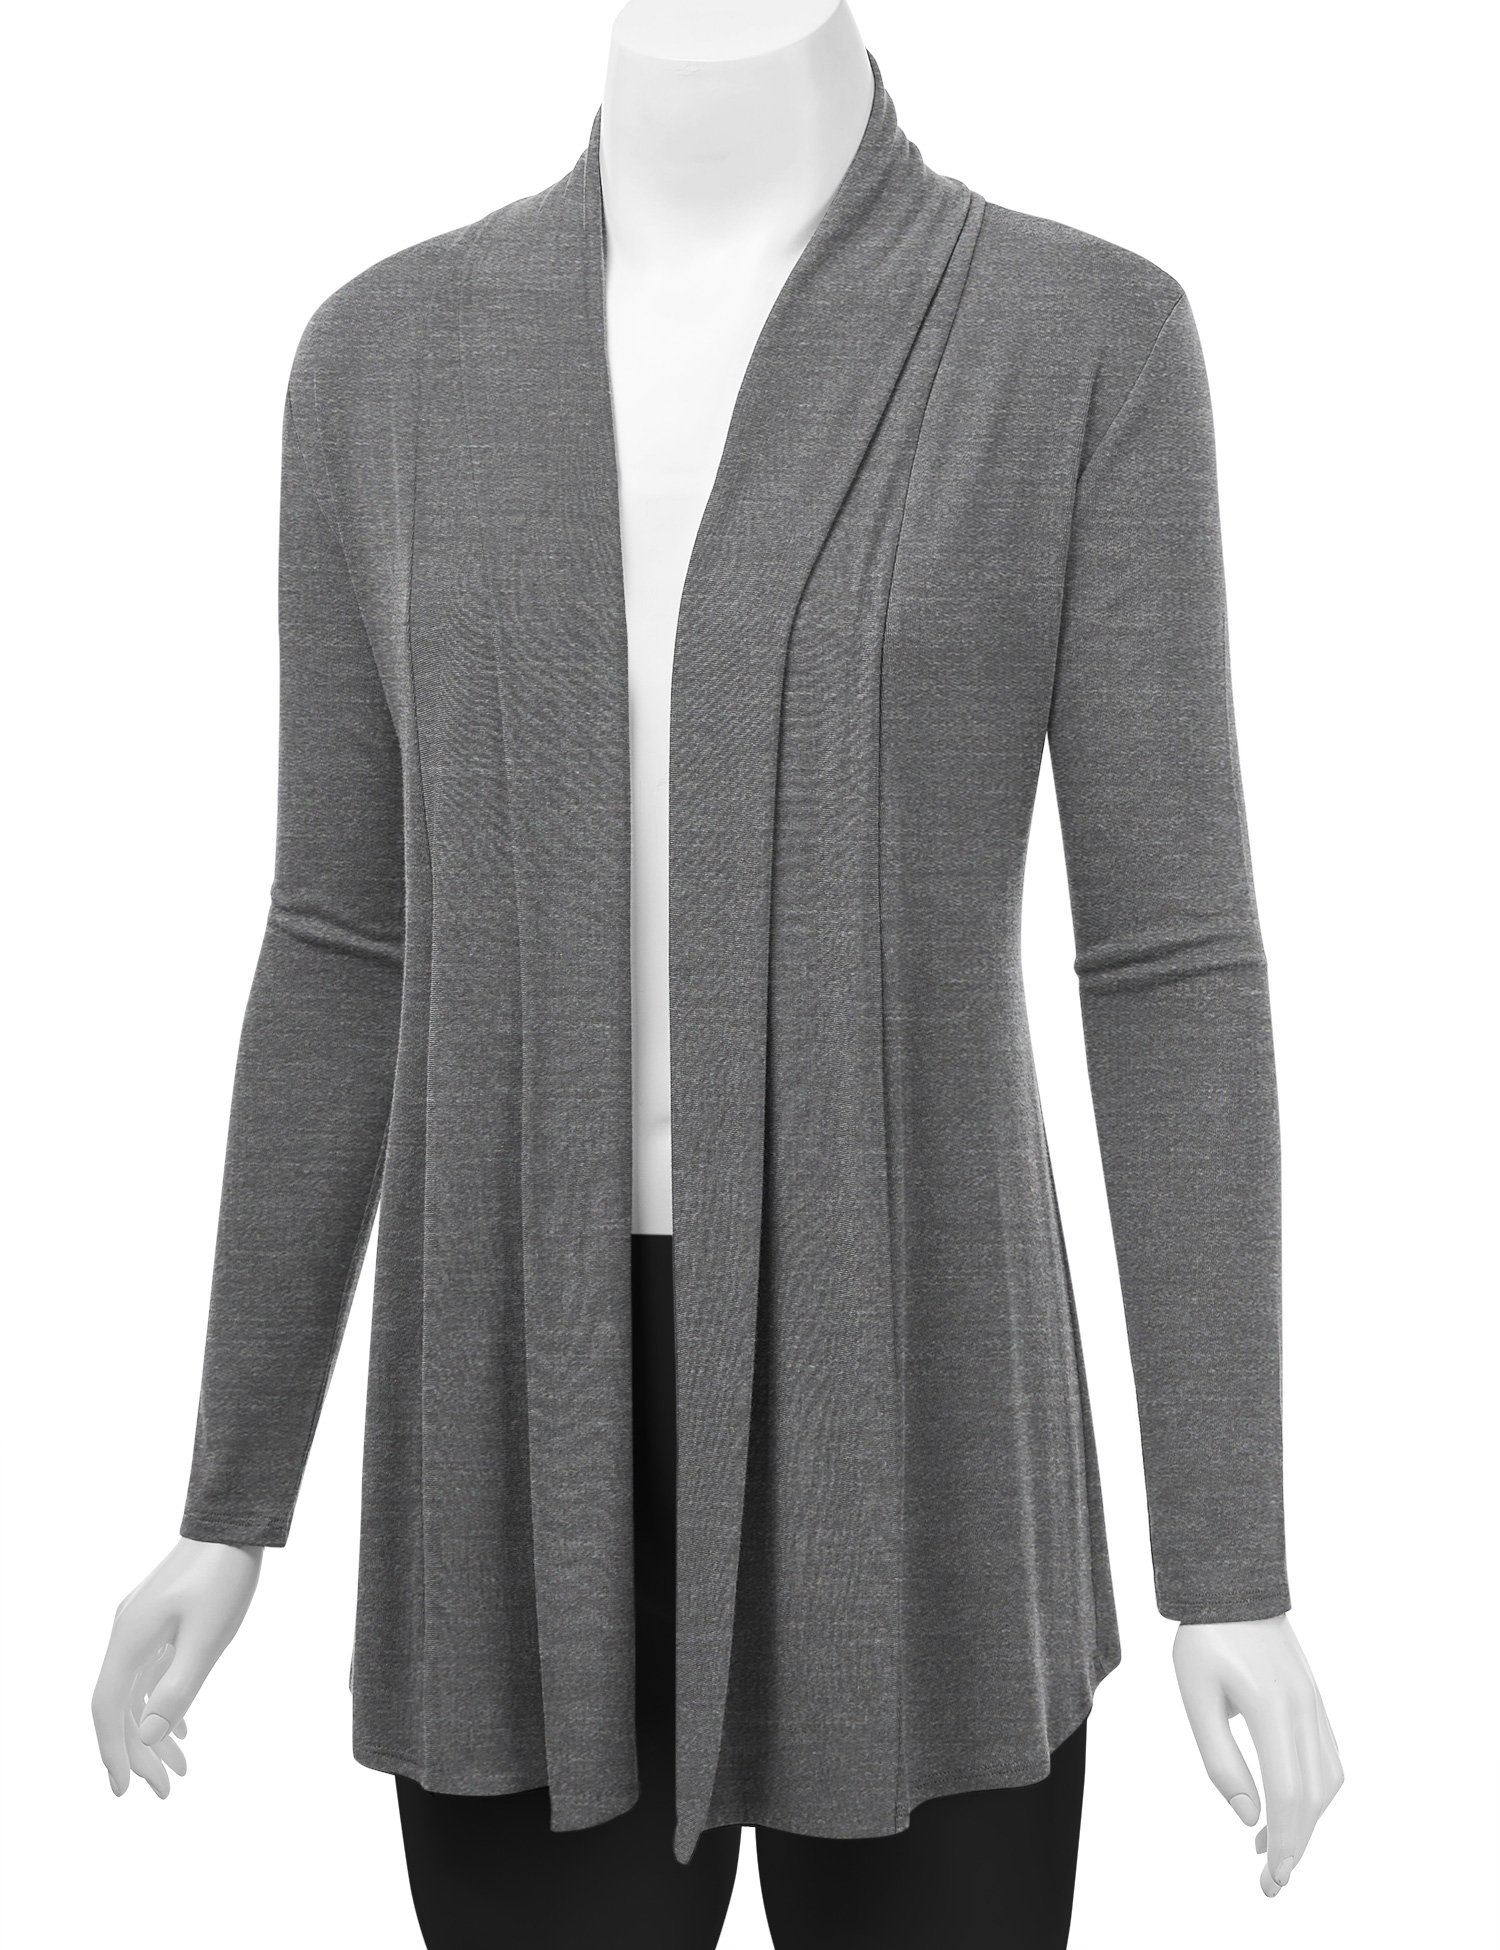 Lock and Love WSK1301 Womens Open Draped Knit Shawl Cardigan M Heather_Dark_Grey by Lock and Love (Image #5)